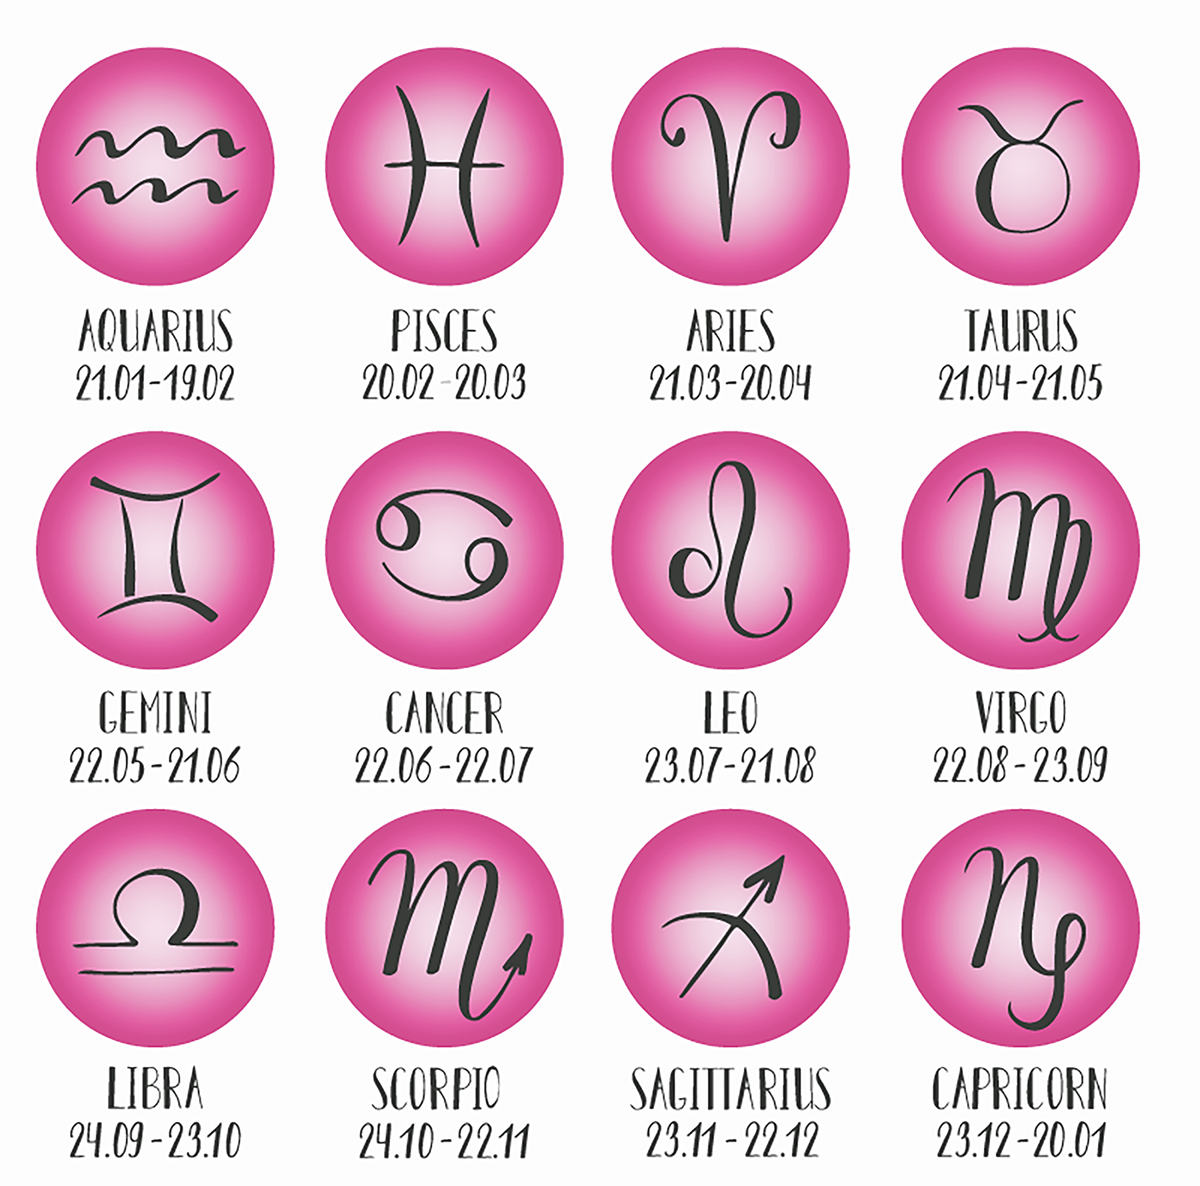 2019 Horoscopes Overview: This Year in Astrology